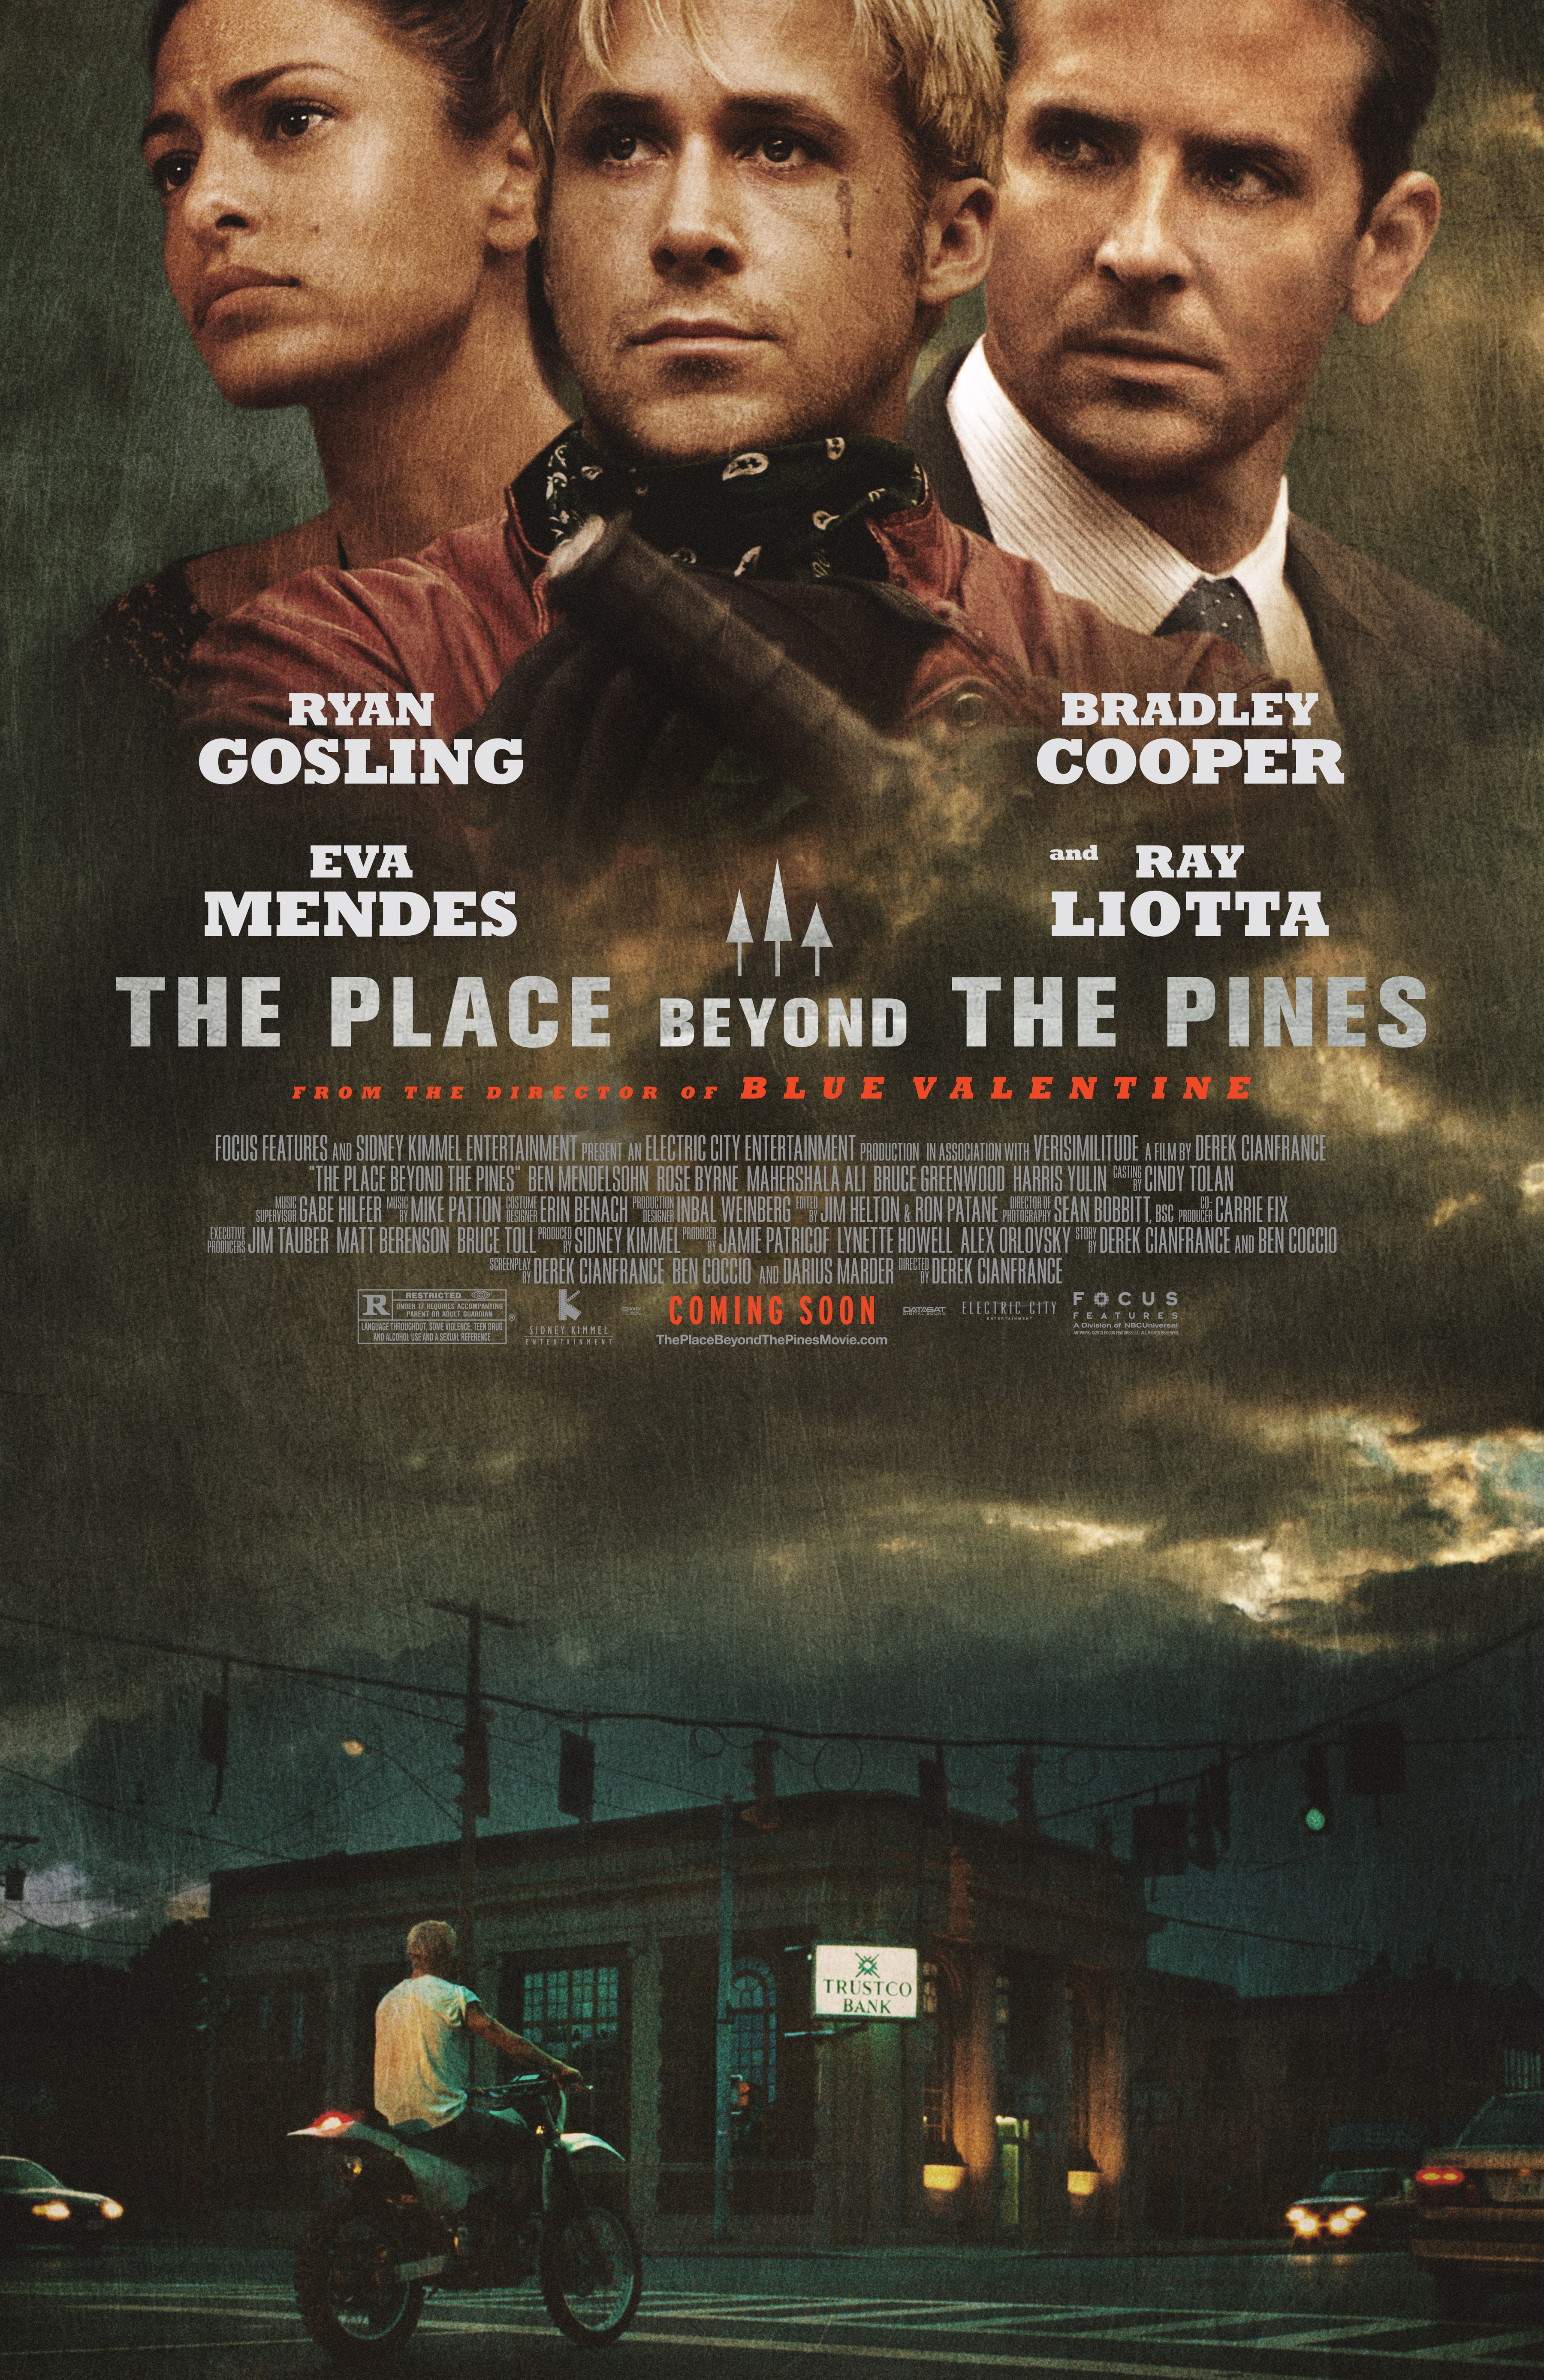 The Place Beyond the Pines - Movie Poster #1 (Original)